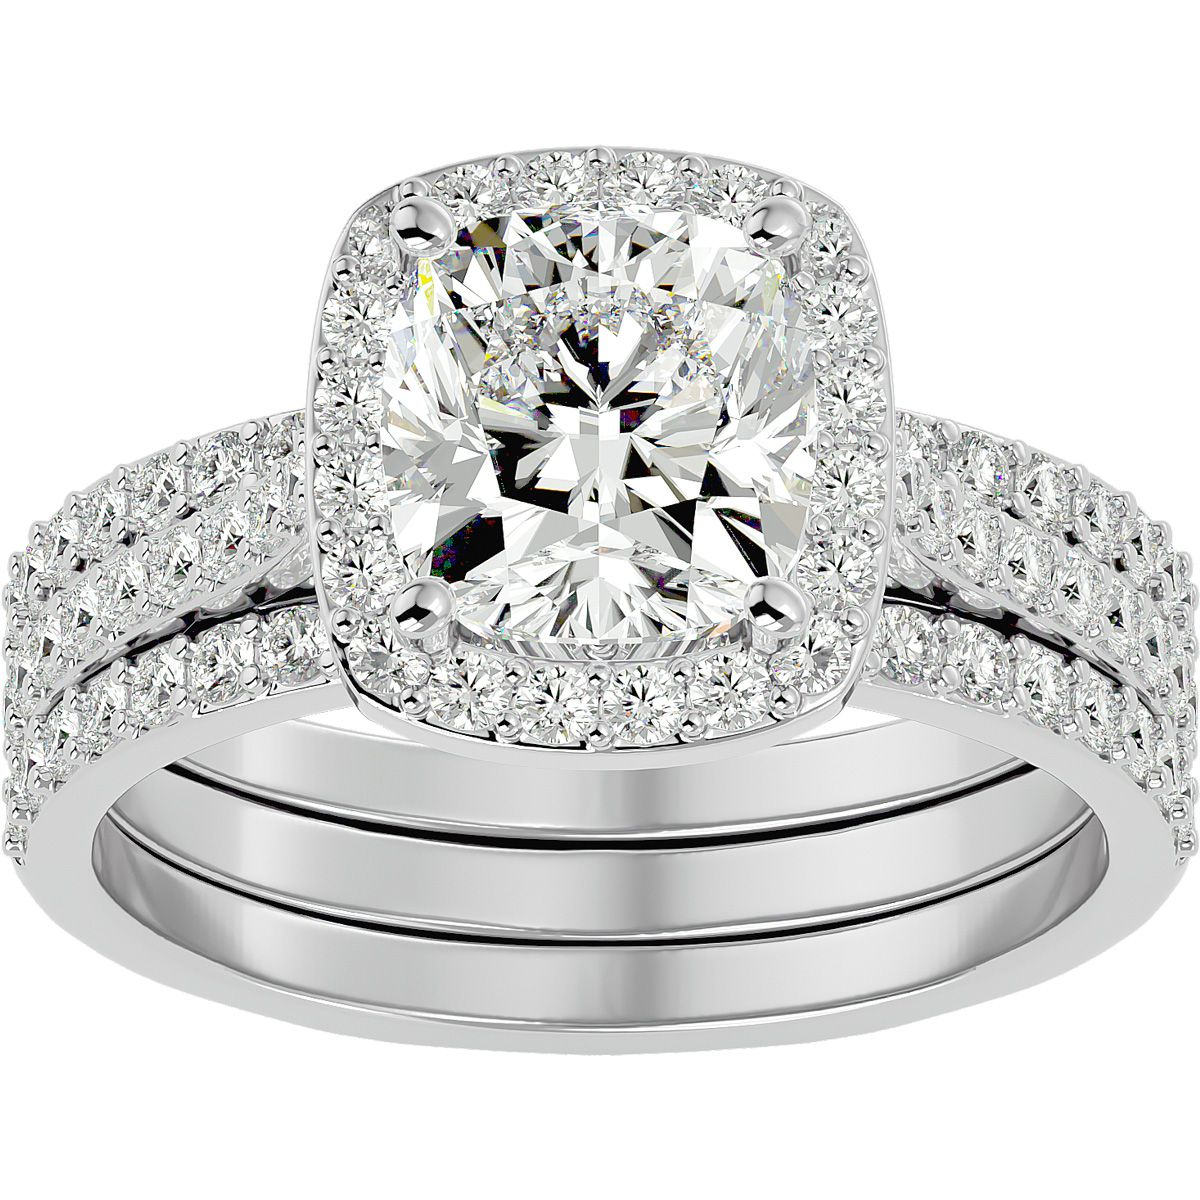 3 Carat Cushion Cut Halo Diamond Bridal Set in 14 Karat White Gold